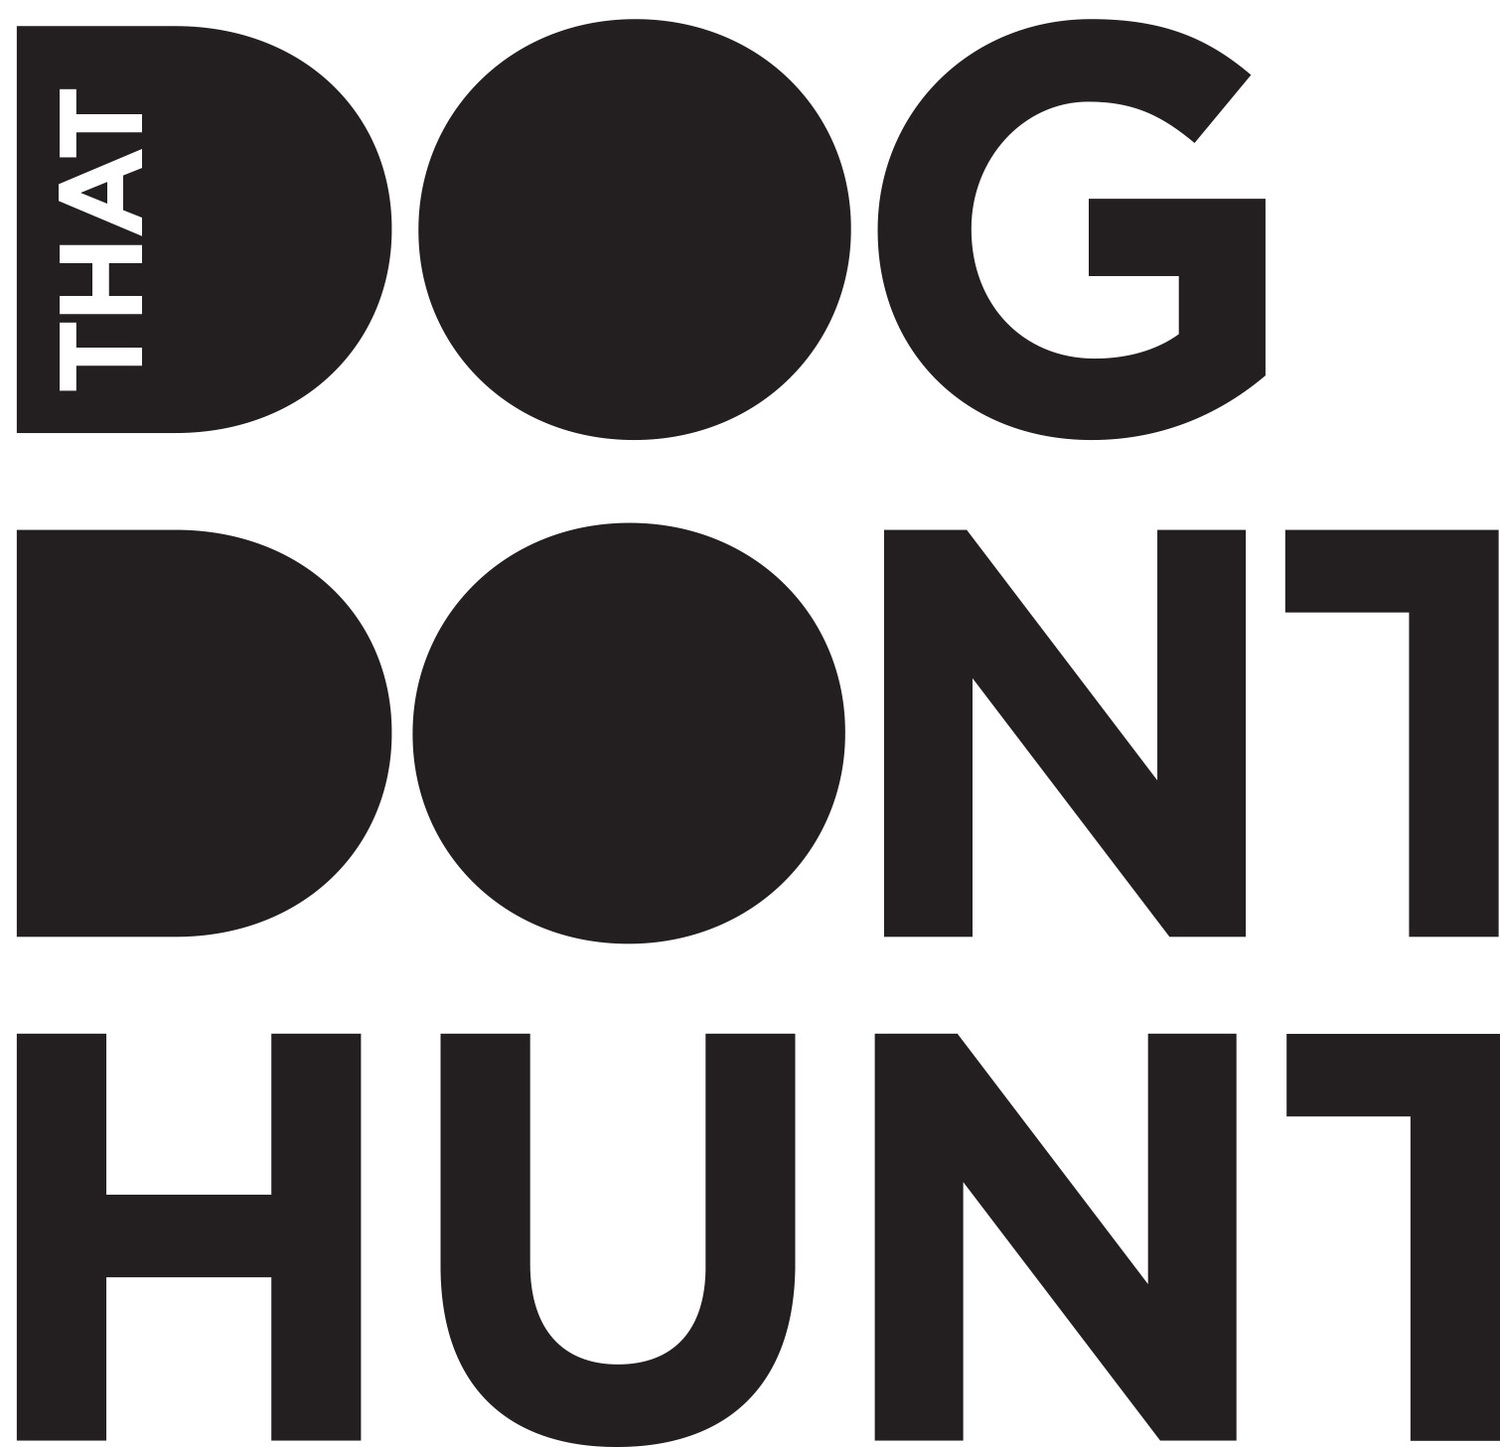 That Dog Don't Hunt